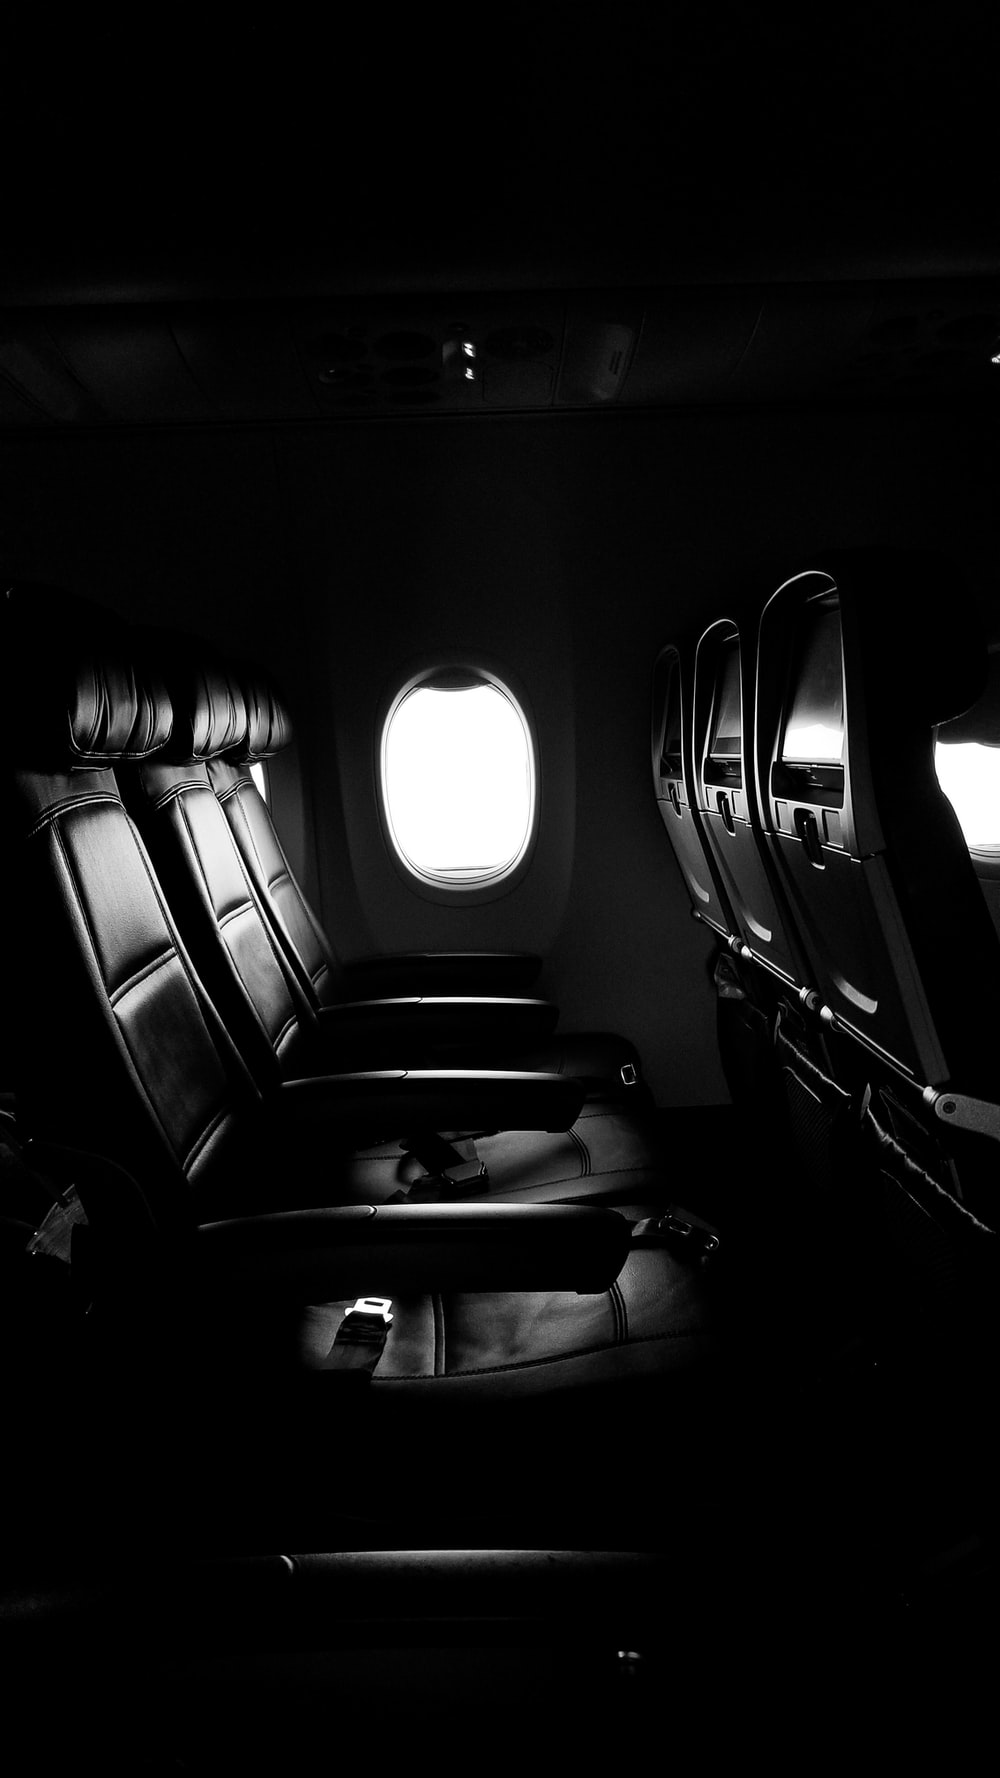 empty chairs of airplane